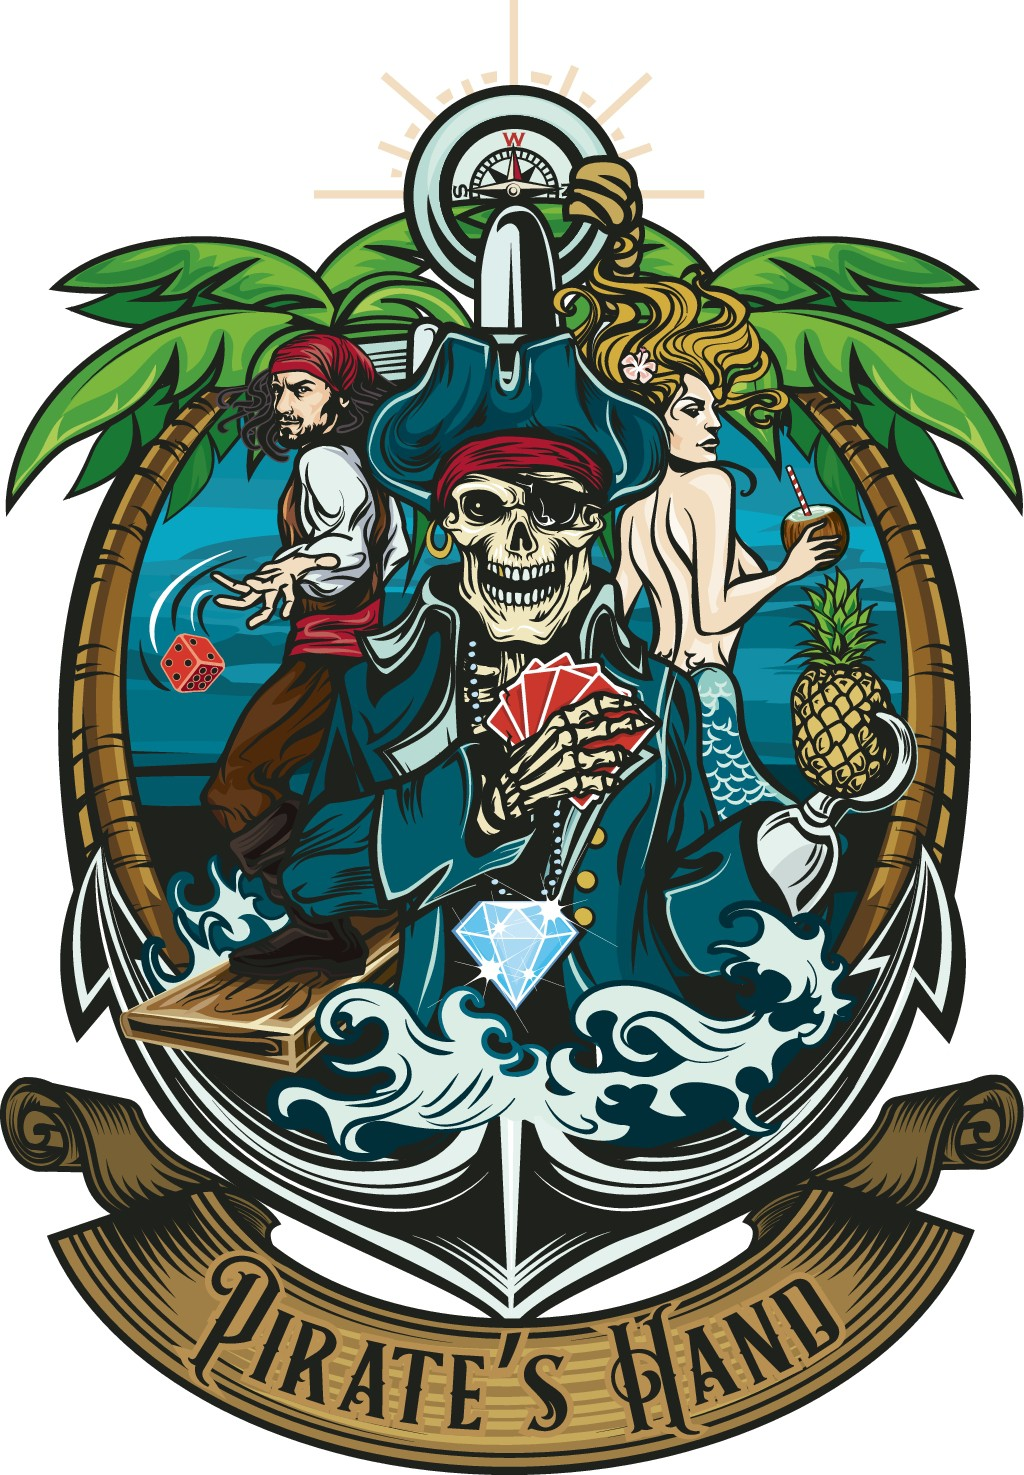 A Tropical Pirate themed logo for a card game.